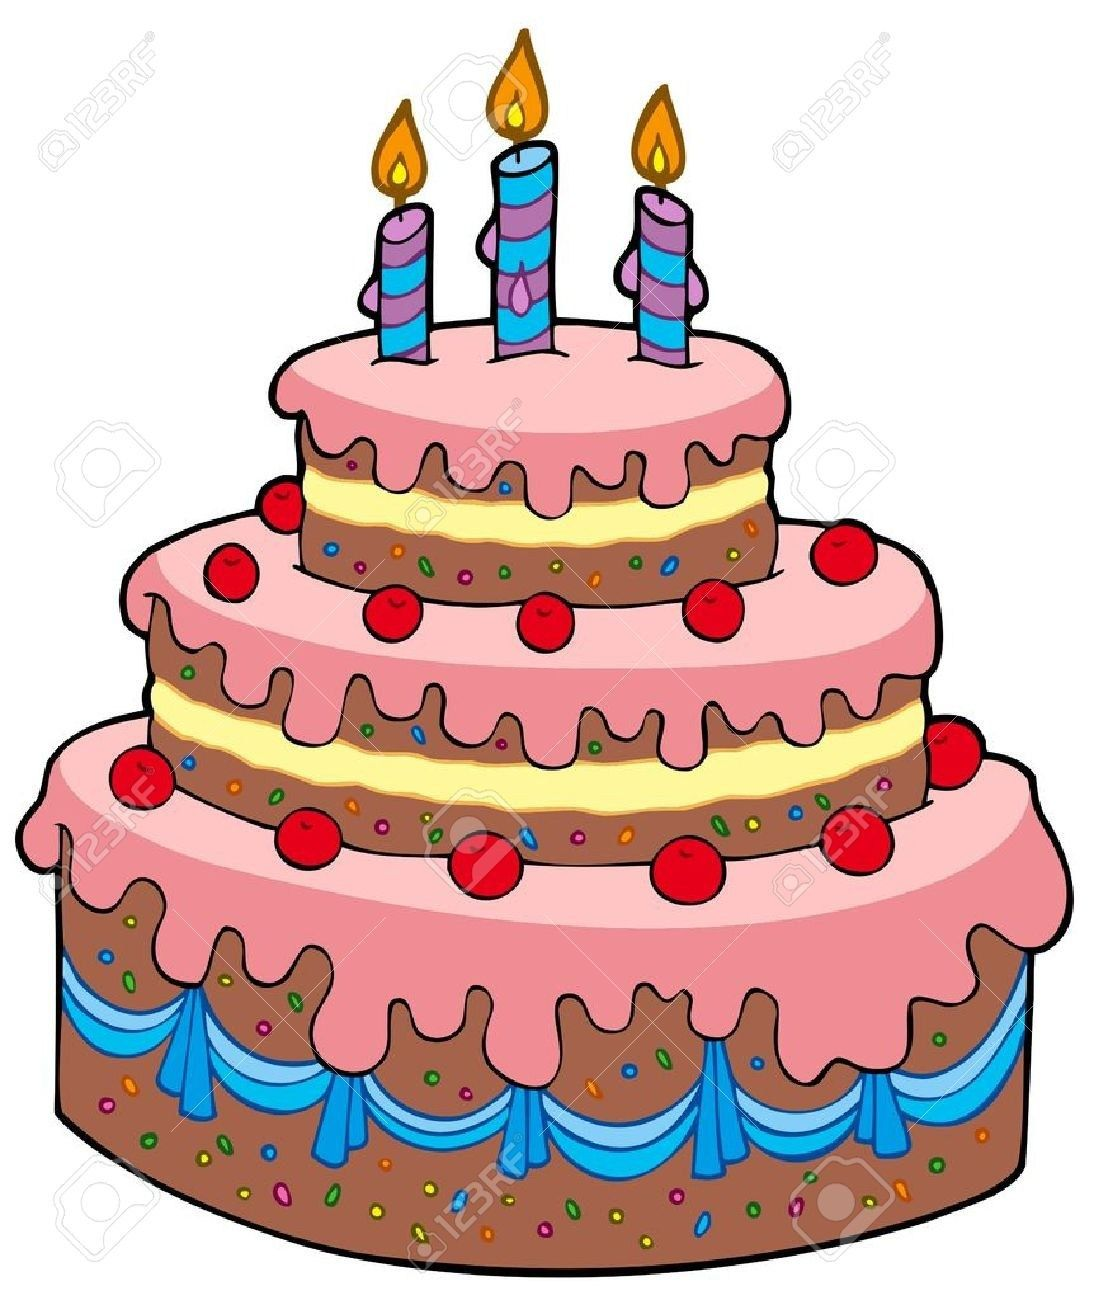 Birthday Cake Cartoon Big Cartoon Birthday Cake Vector Illustration Royalty Free Birthday Cake Clip Art Cartoon Birthday Cake Art Birthday Cake